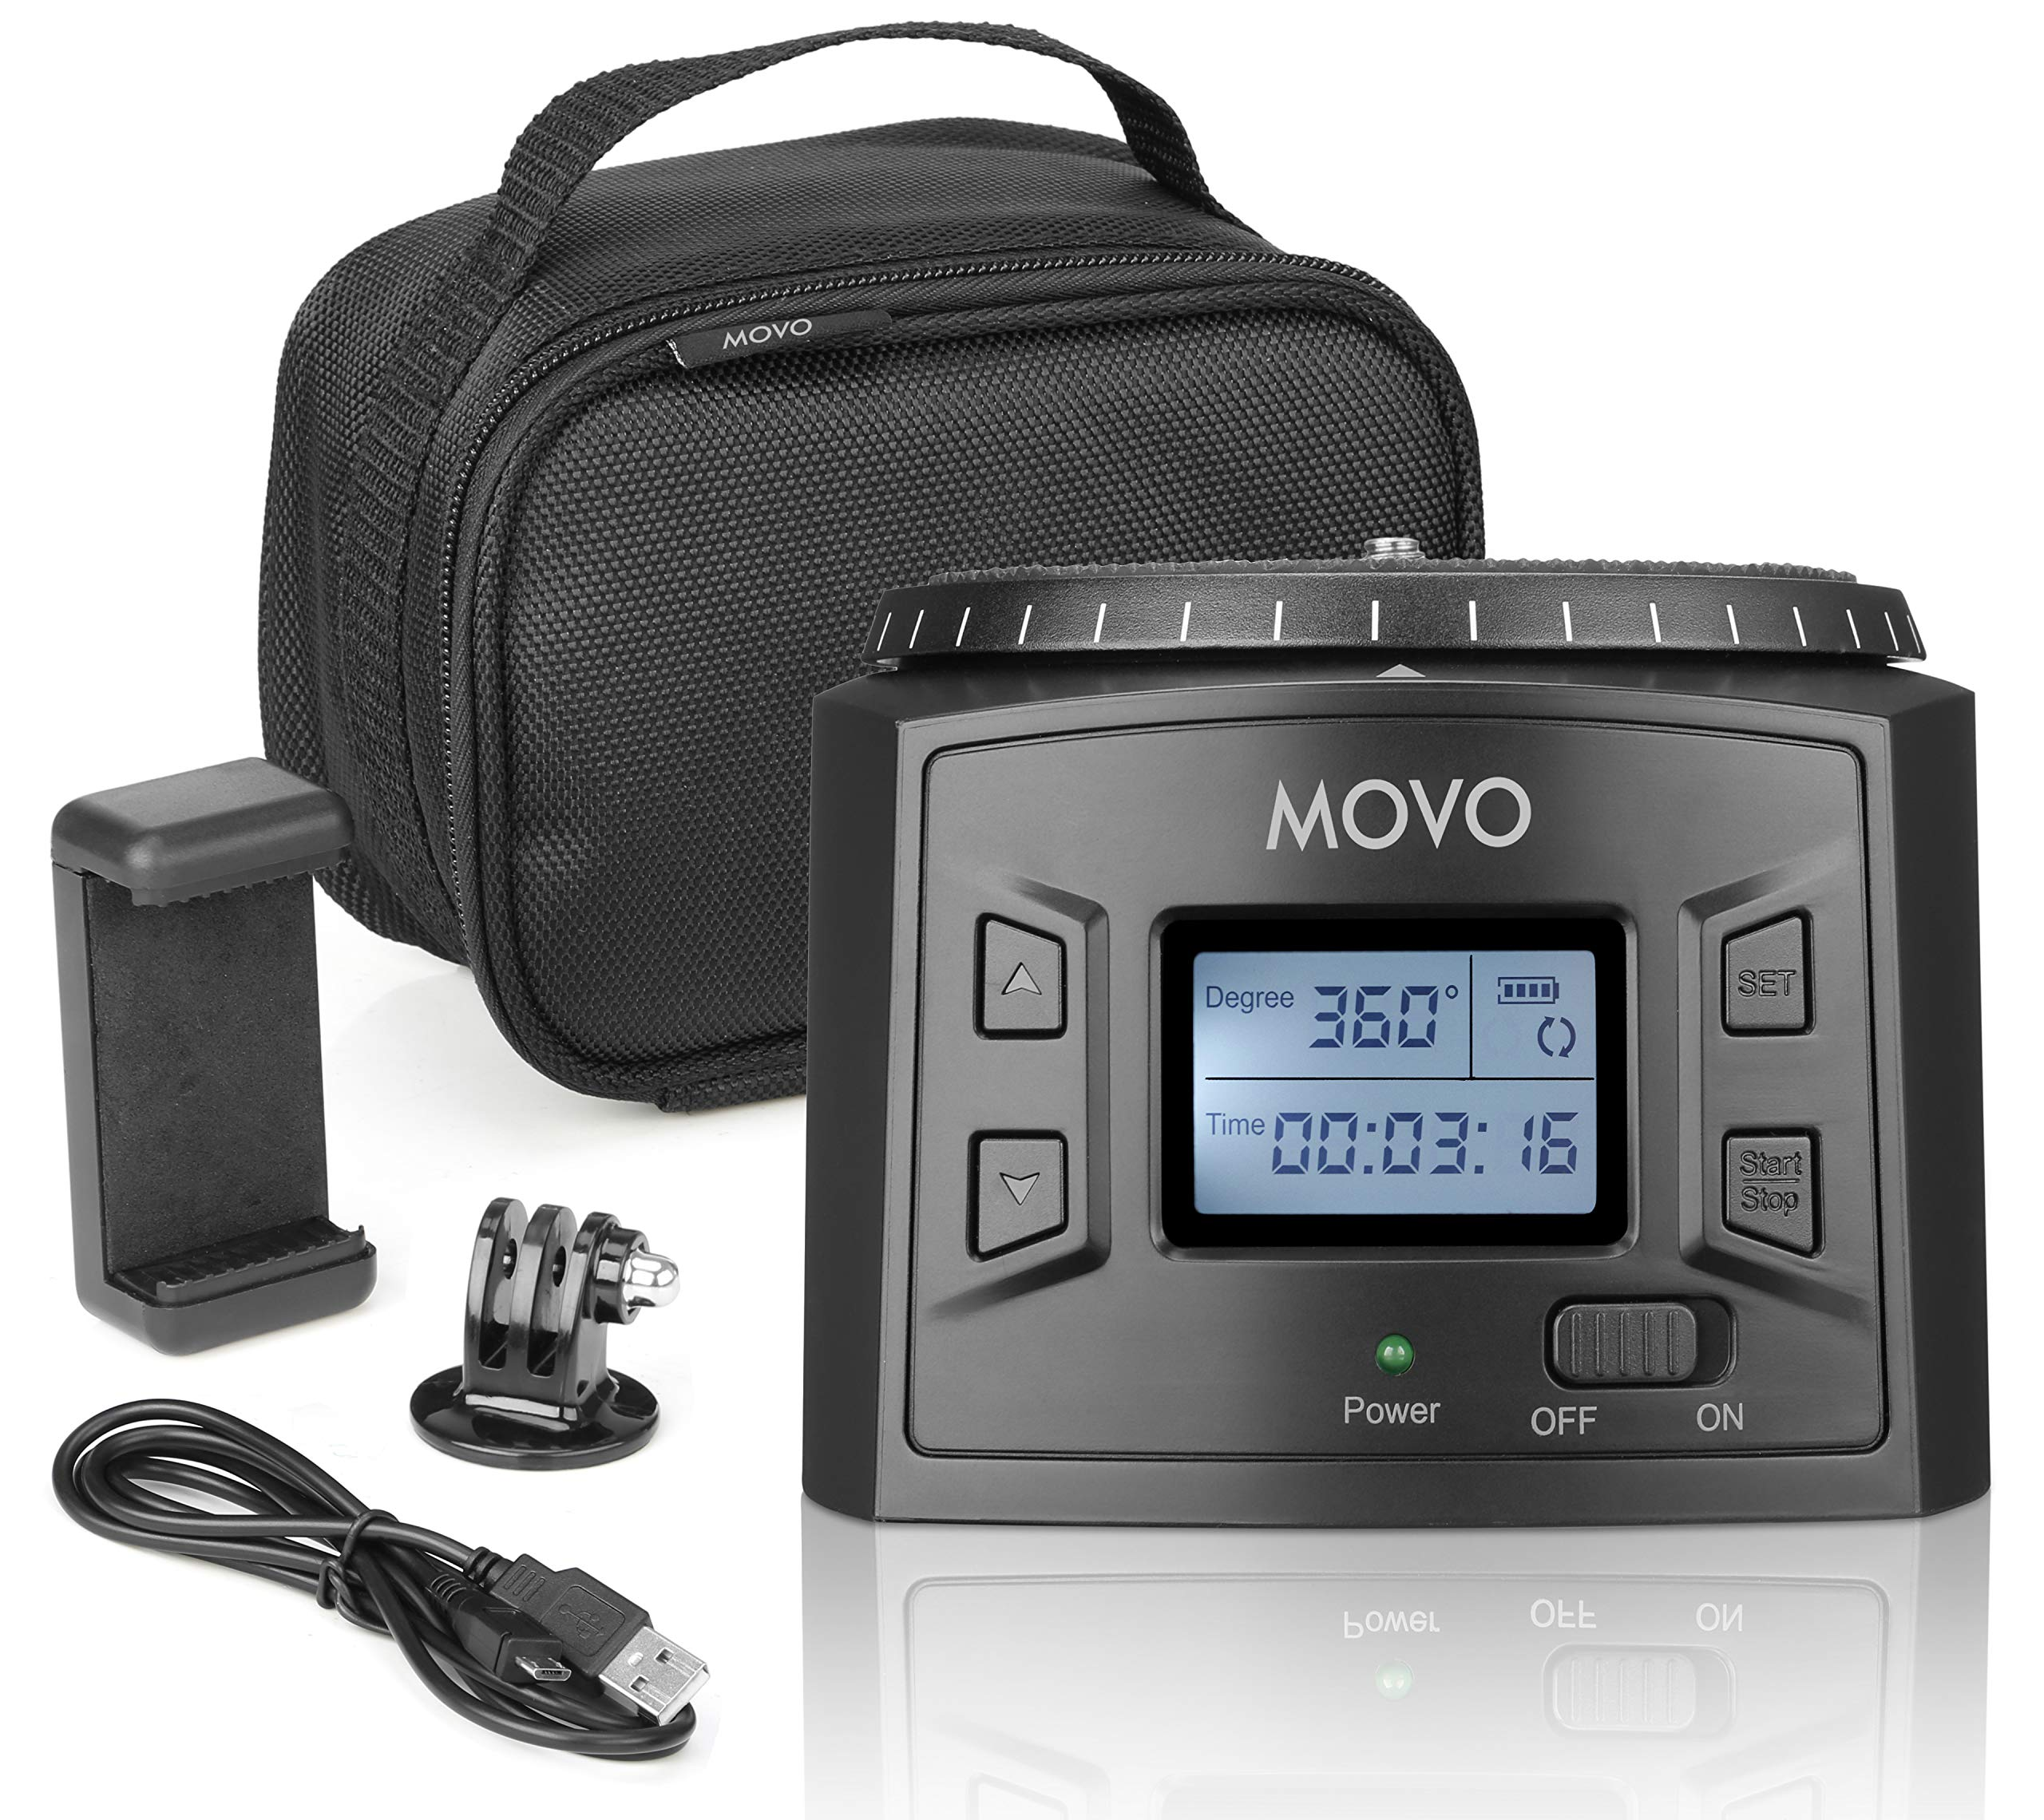 Movo MTP-20 Programmable Panoramic Time-Lapse Tripod Head with Adjustable Rotating Angle, Direction, and Speed - Compatible with Smartphones, GoPro, Mirrorless and DSLR Cameras up to 4.4 Lbs by Movo